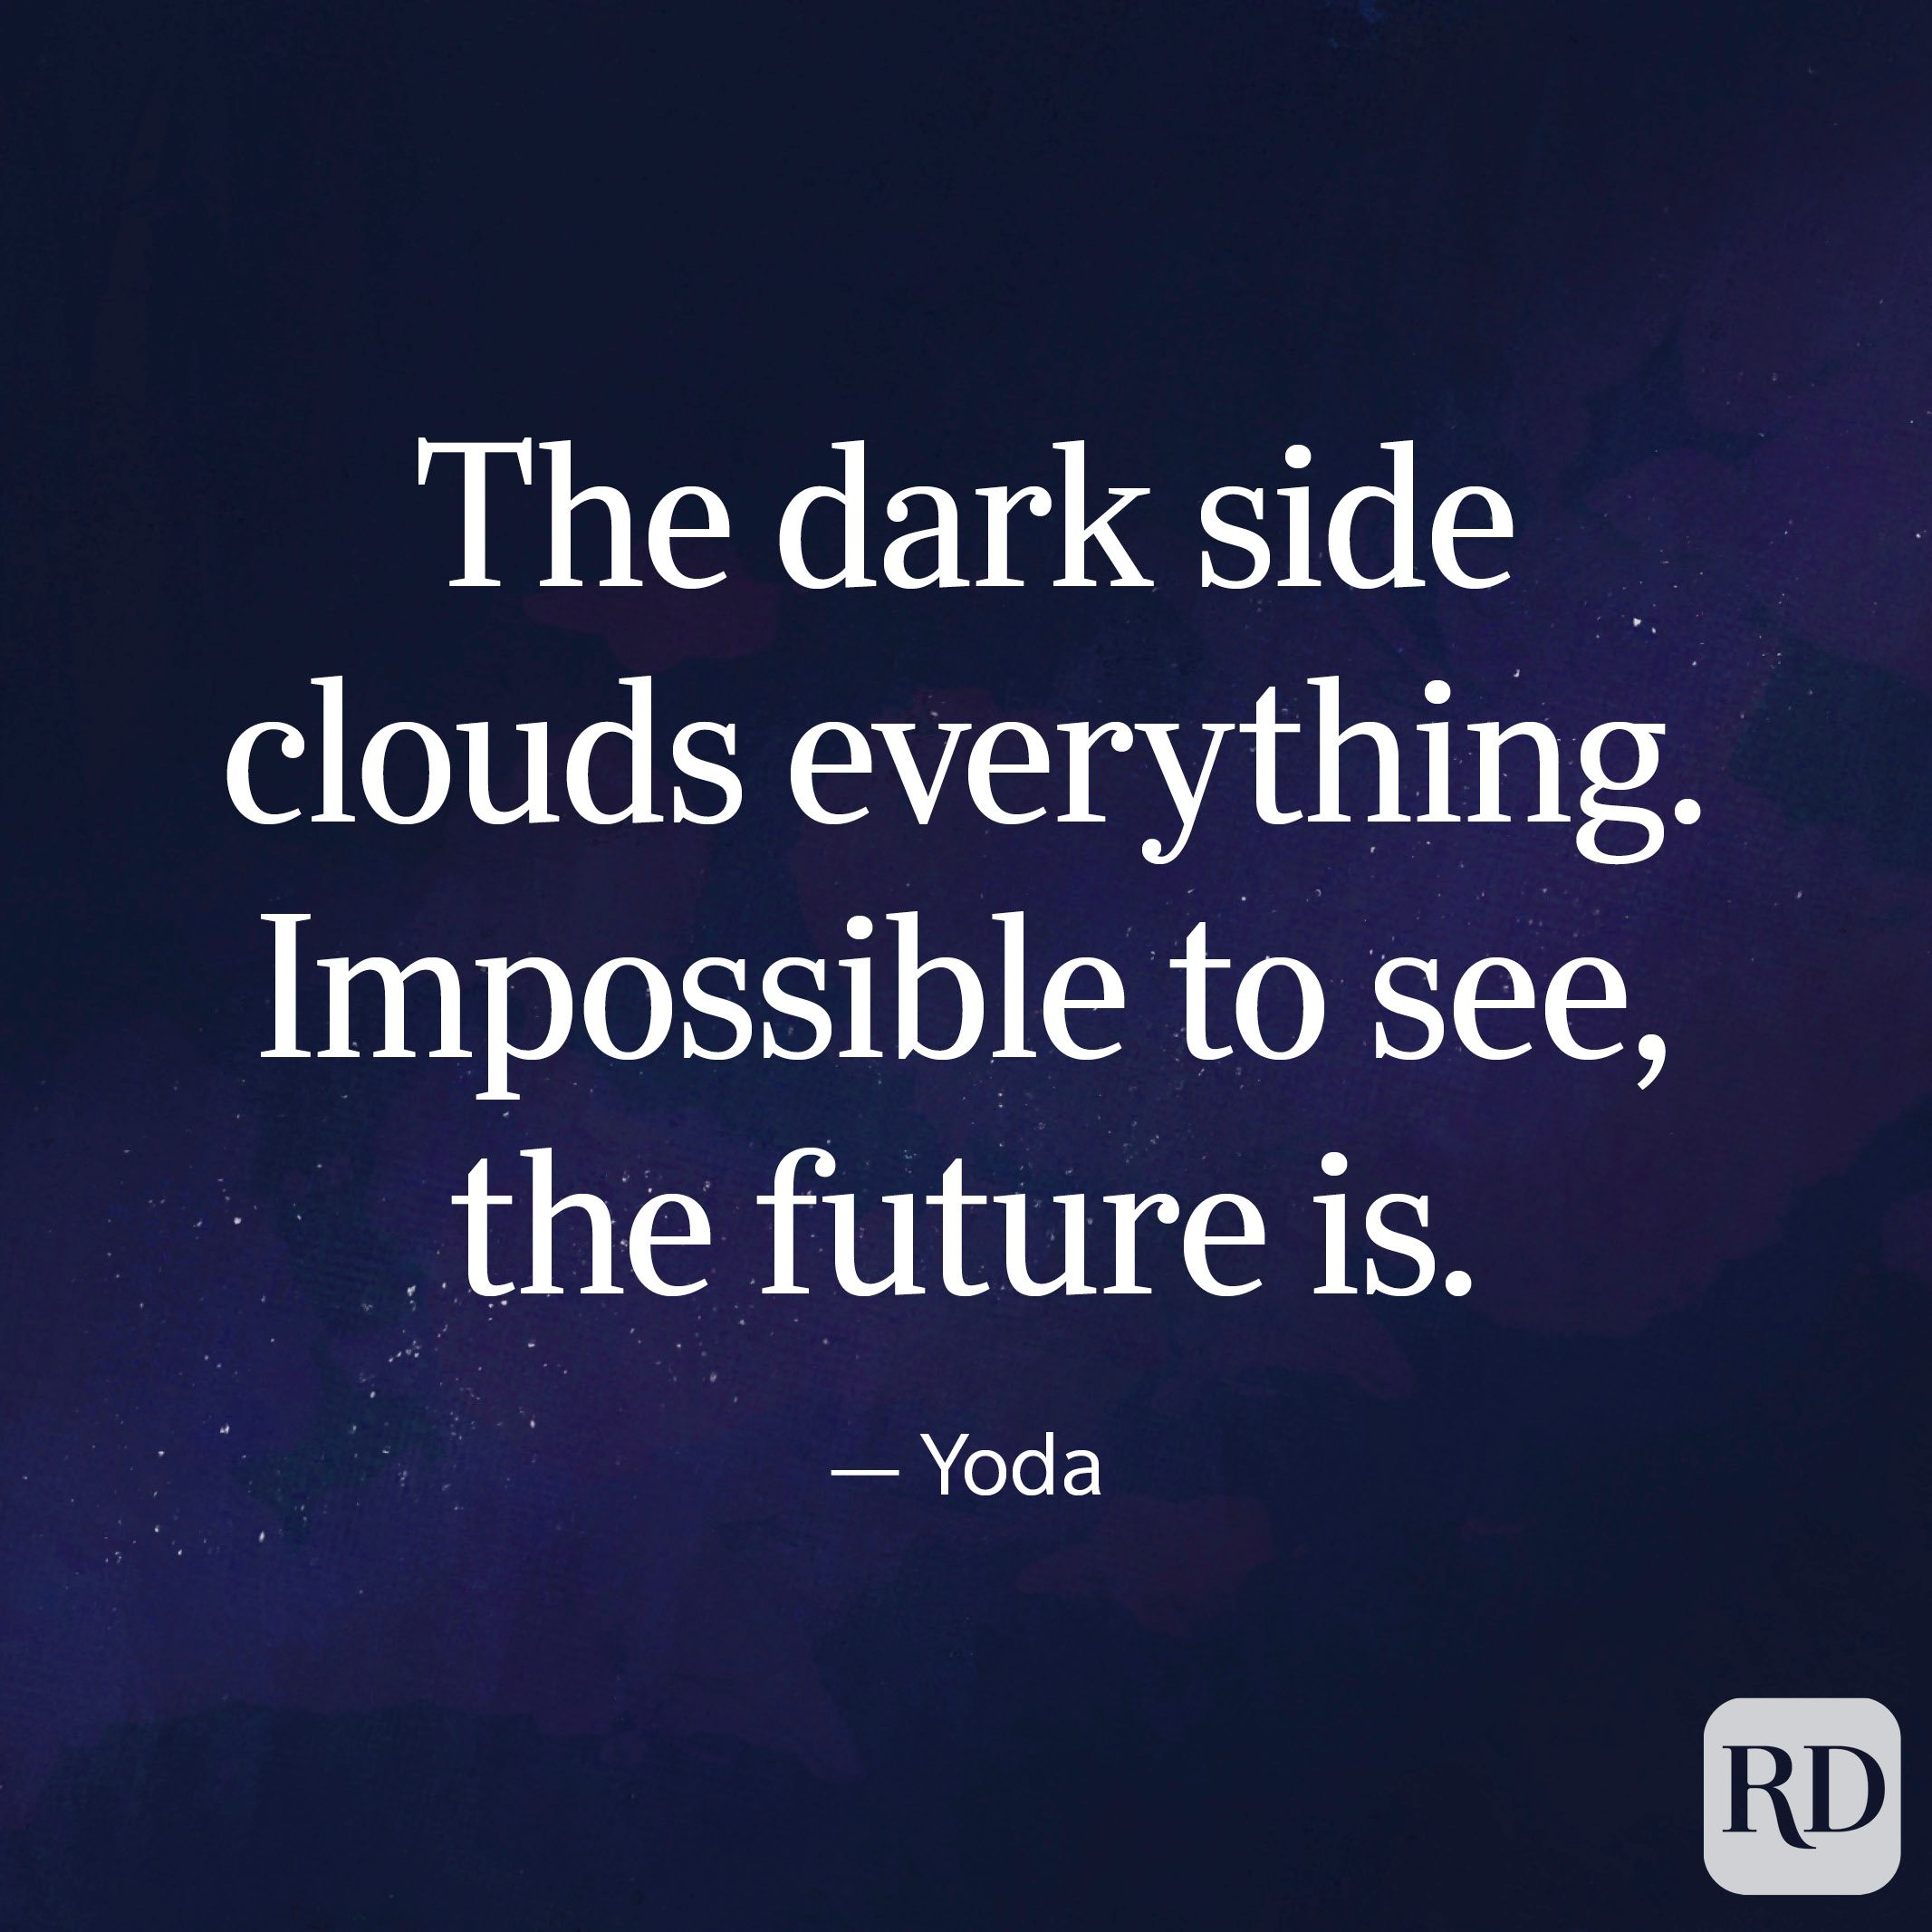 The dark side clouds everything. Impossible to see, the future is. - Yoda